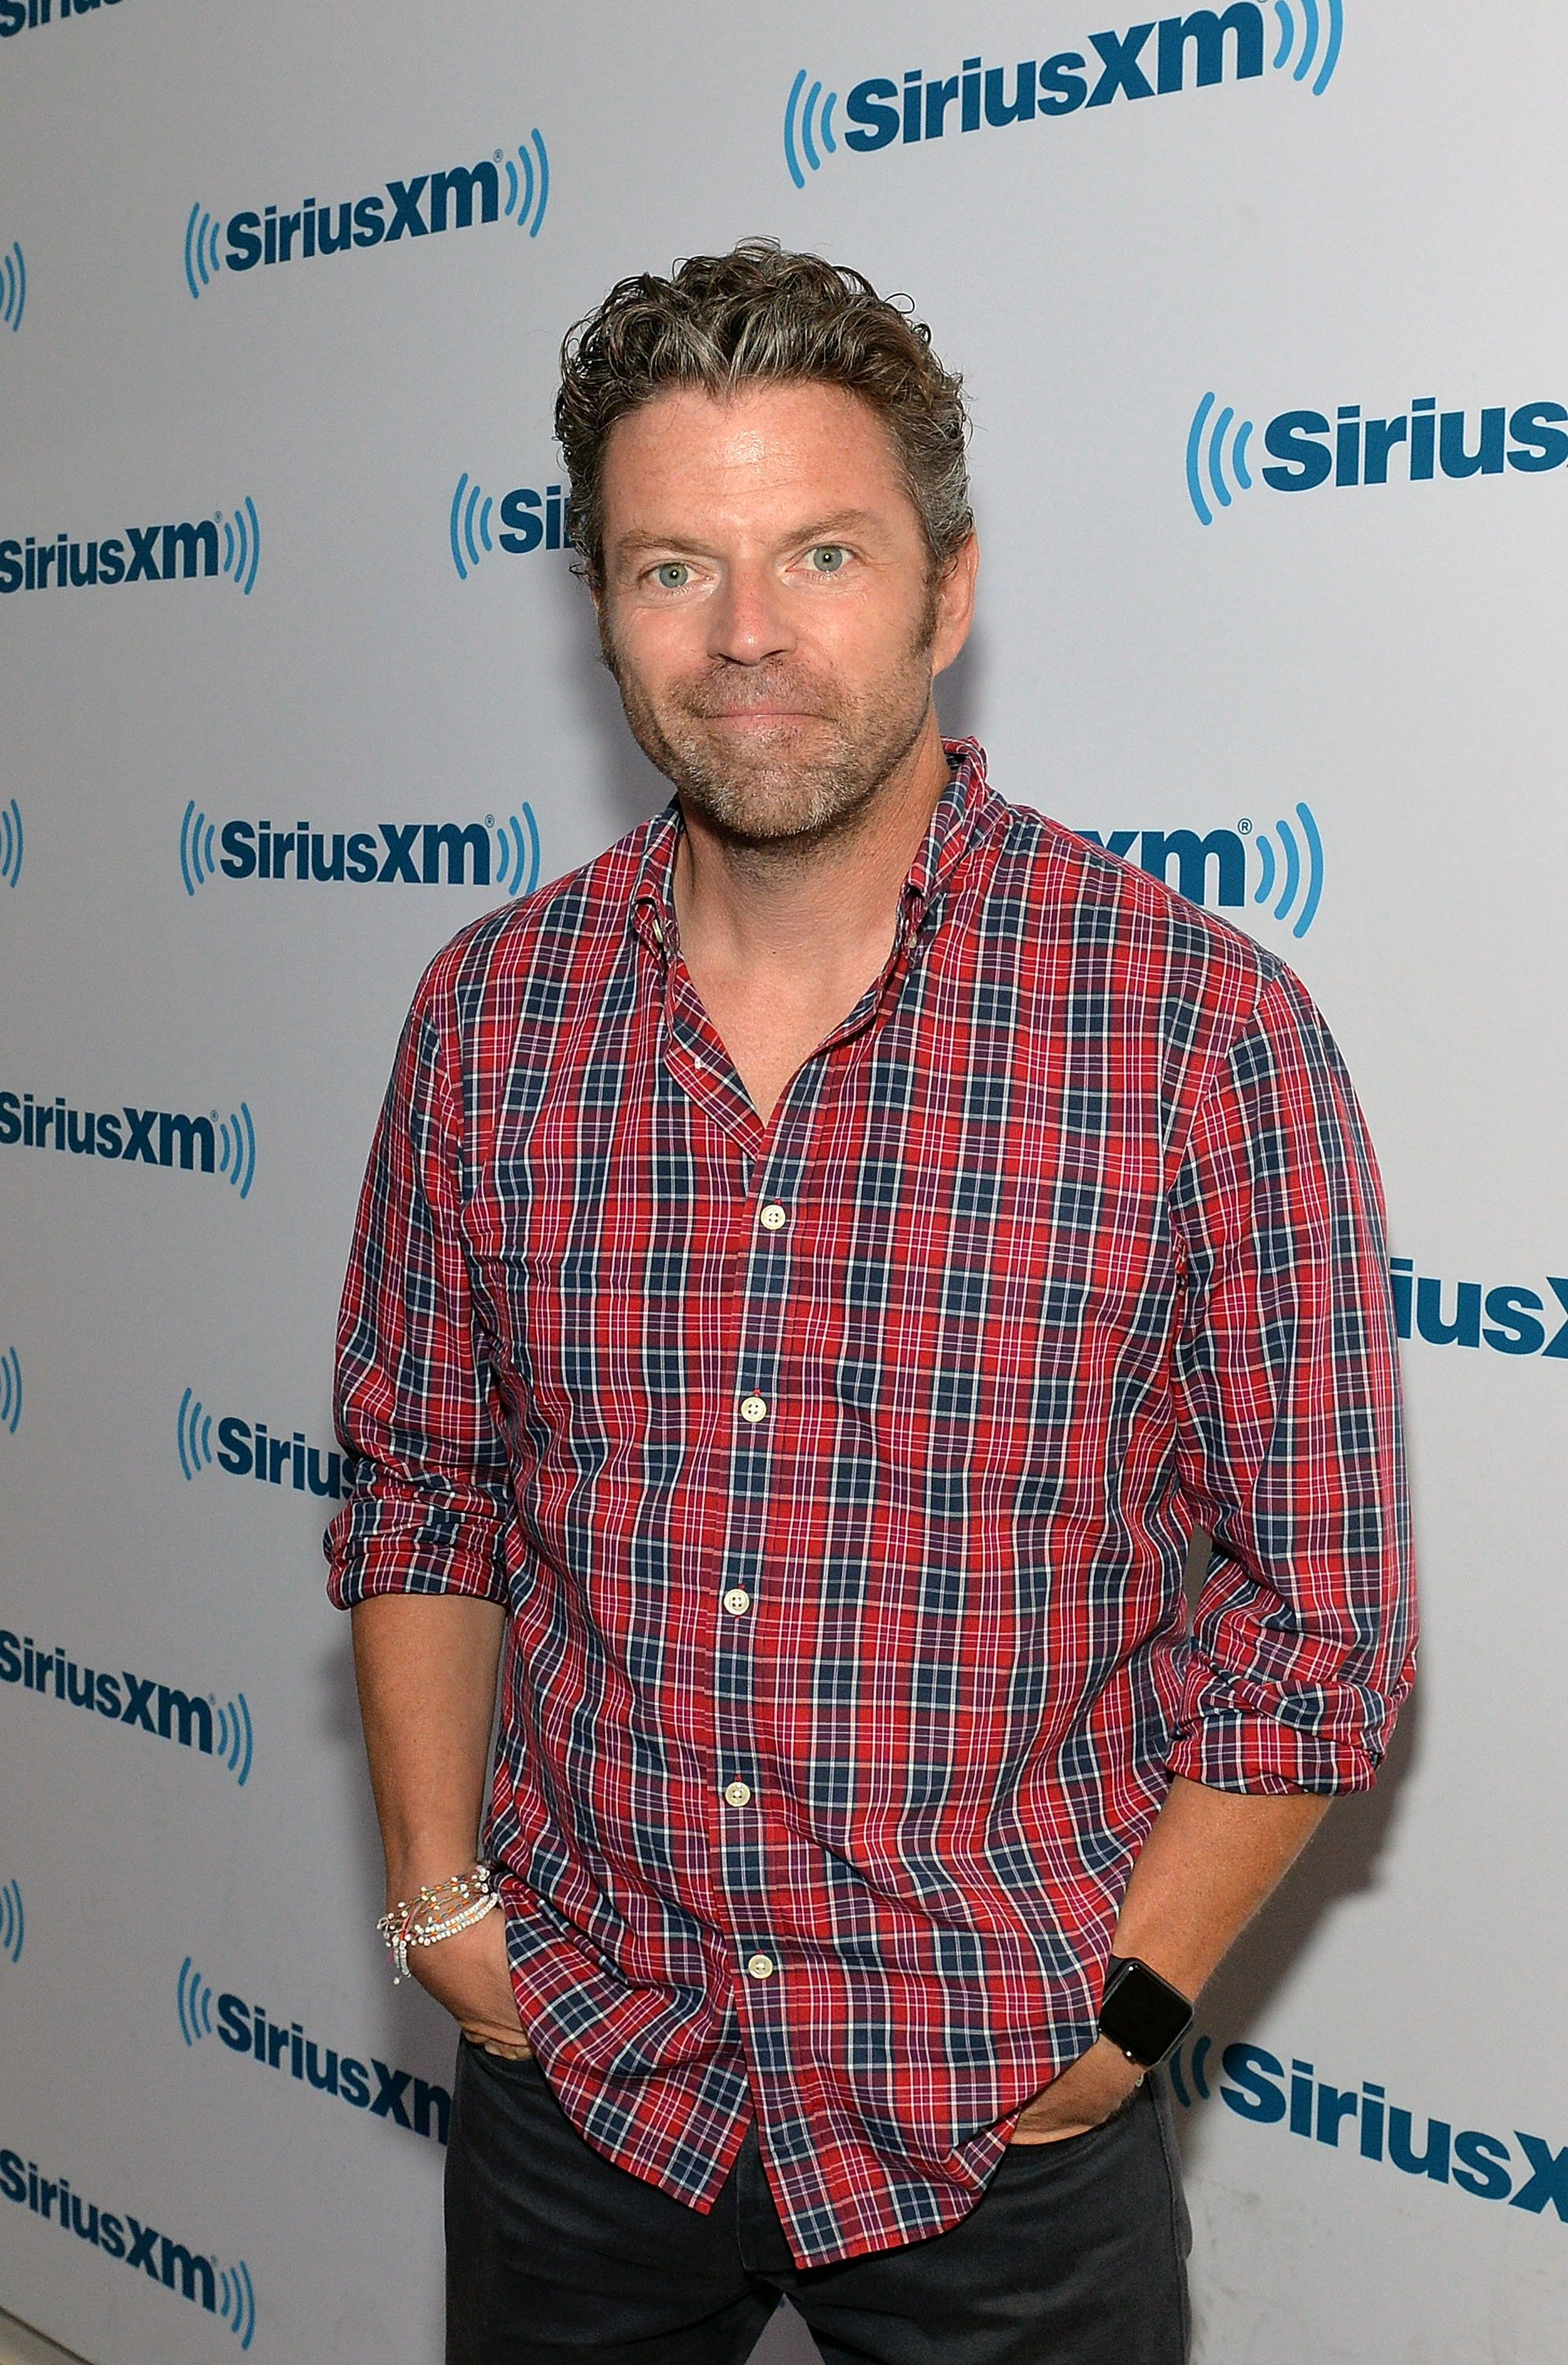 NEW YORK, NY - JUNE 27:  (EXCLUSIVE COVERAGE) TV personality Dave Holmes visits SiriusXM Studios on June 27, 2016 in New York City.  (Photo by Slaven Vlasic/Getty Images)